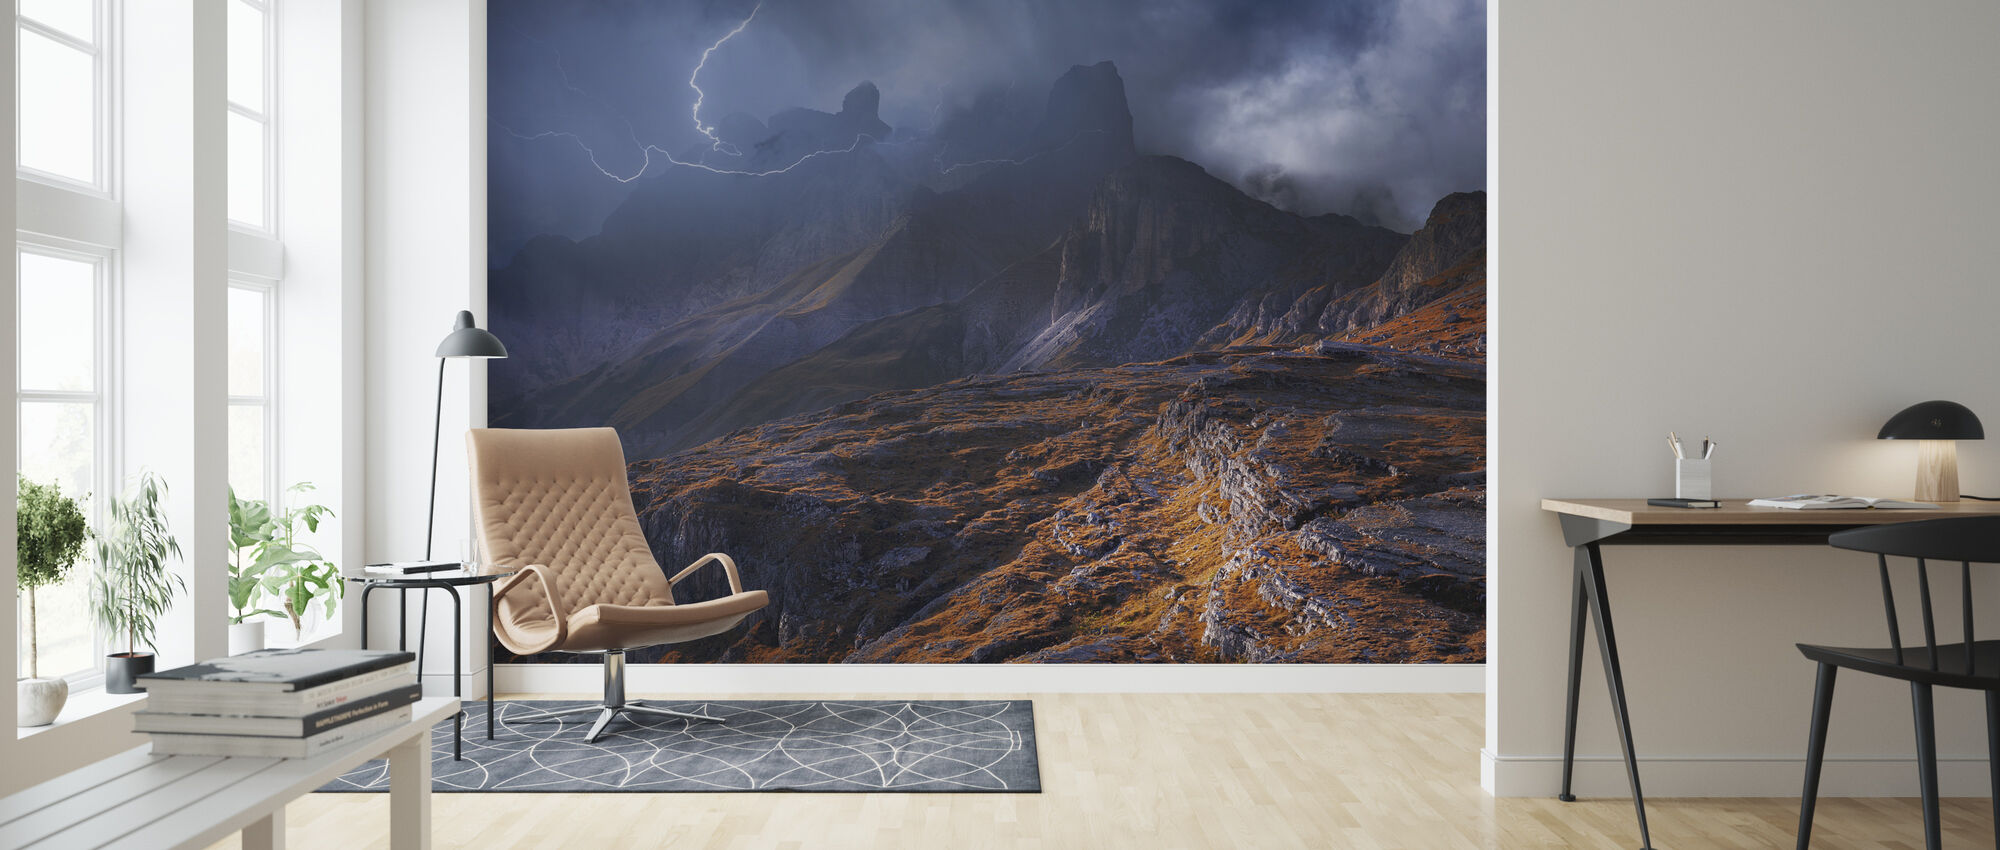 Mountain weather - Wallpaper - Living Room